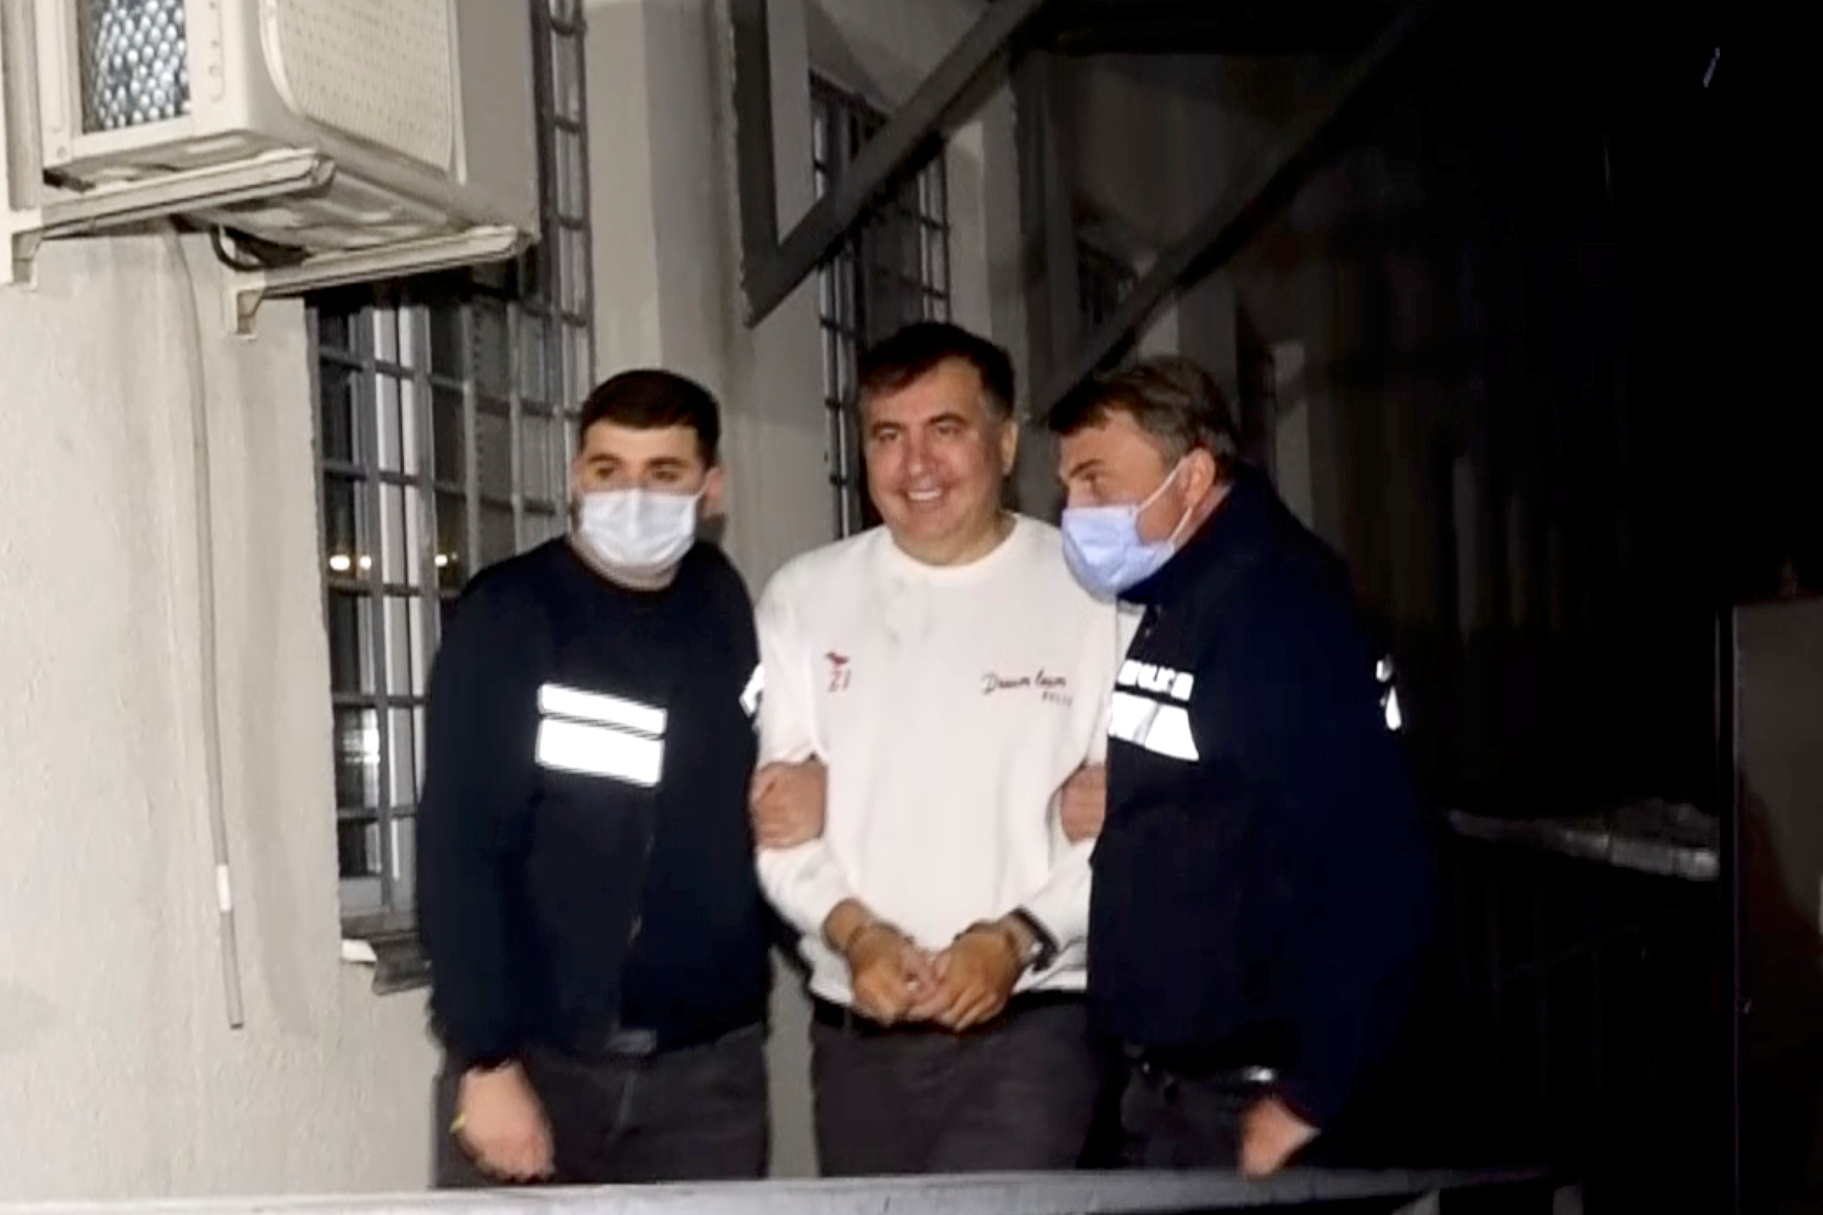 Georgia's former President Mikheil Saakashvili, who was detained after returning to the country, is escorted by police officers as he arrives at a prison in Rustavi, Georgia October 1, 2021, in this still image taken from video. Georgian Interior Ministry/Handout via REUTERS